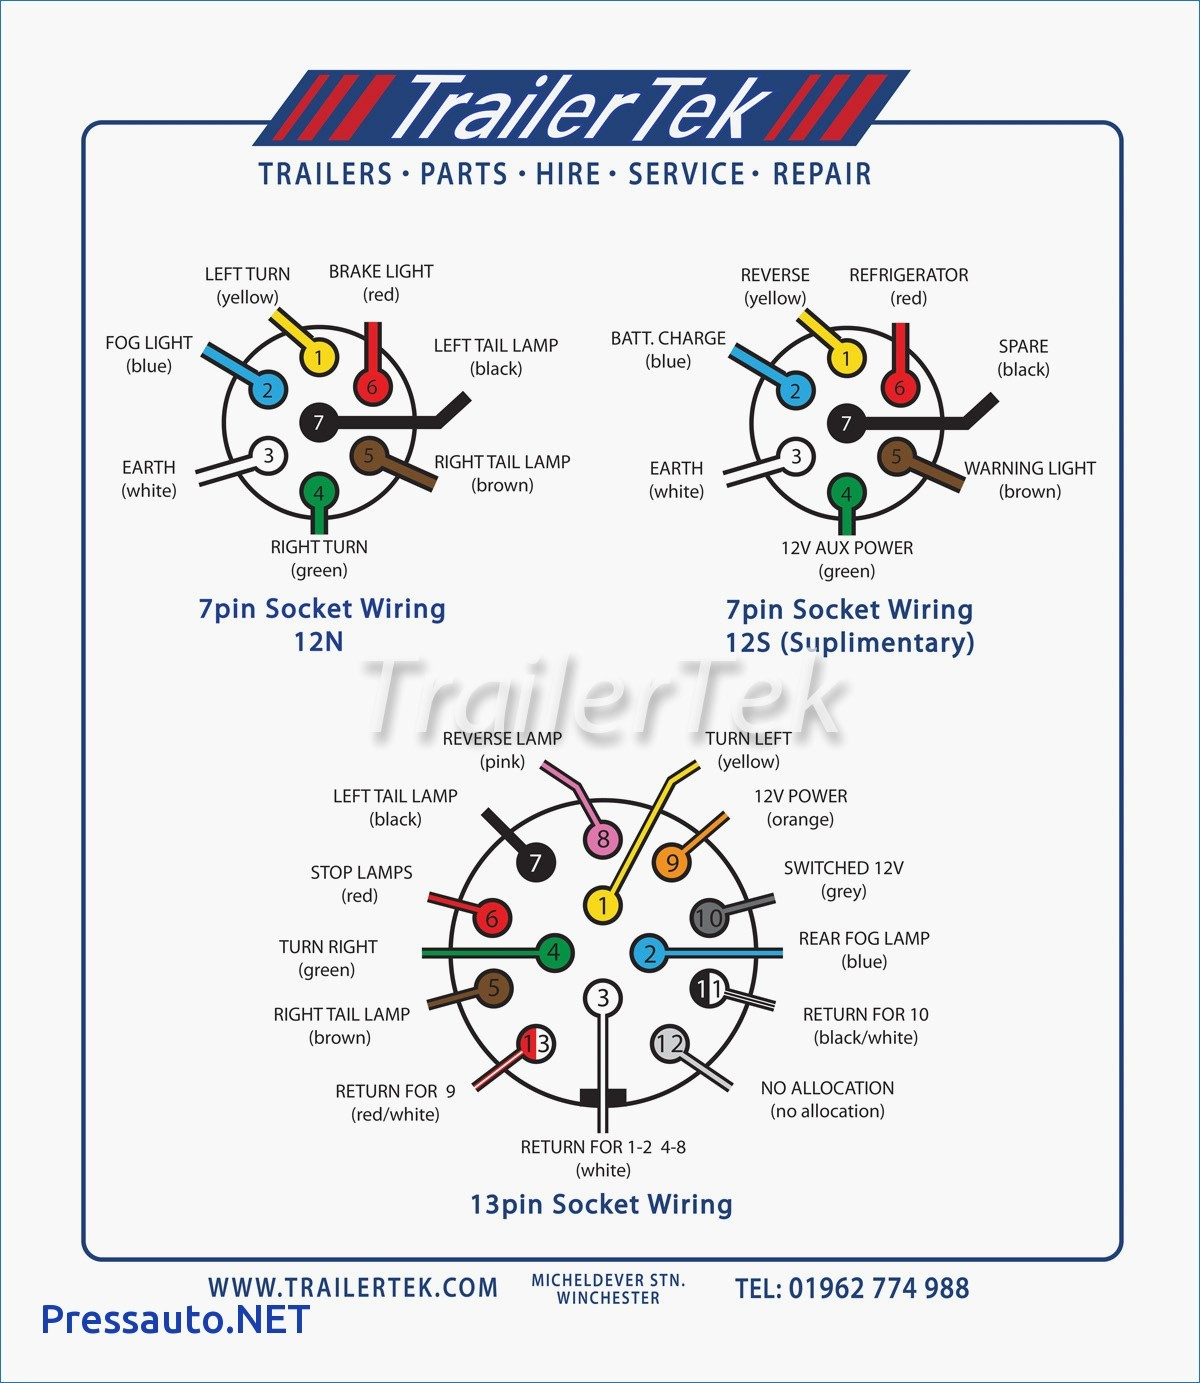 7 Blade Trailer Wiring Diagram With Brakes from static-cdn.imageservice.cloud